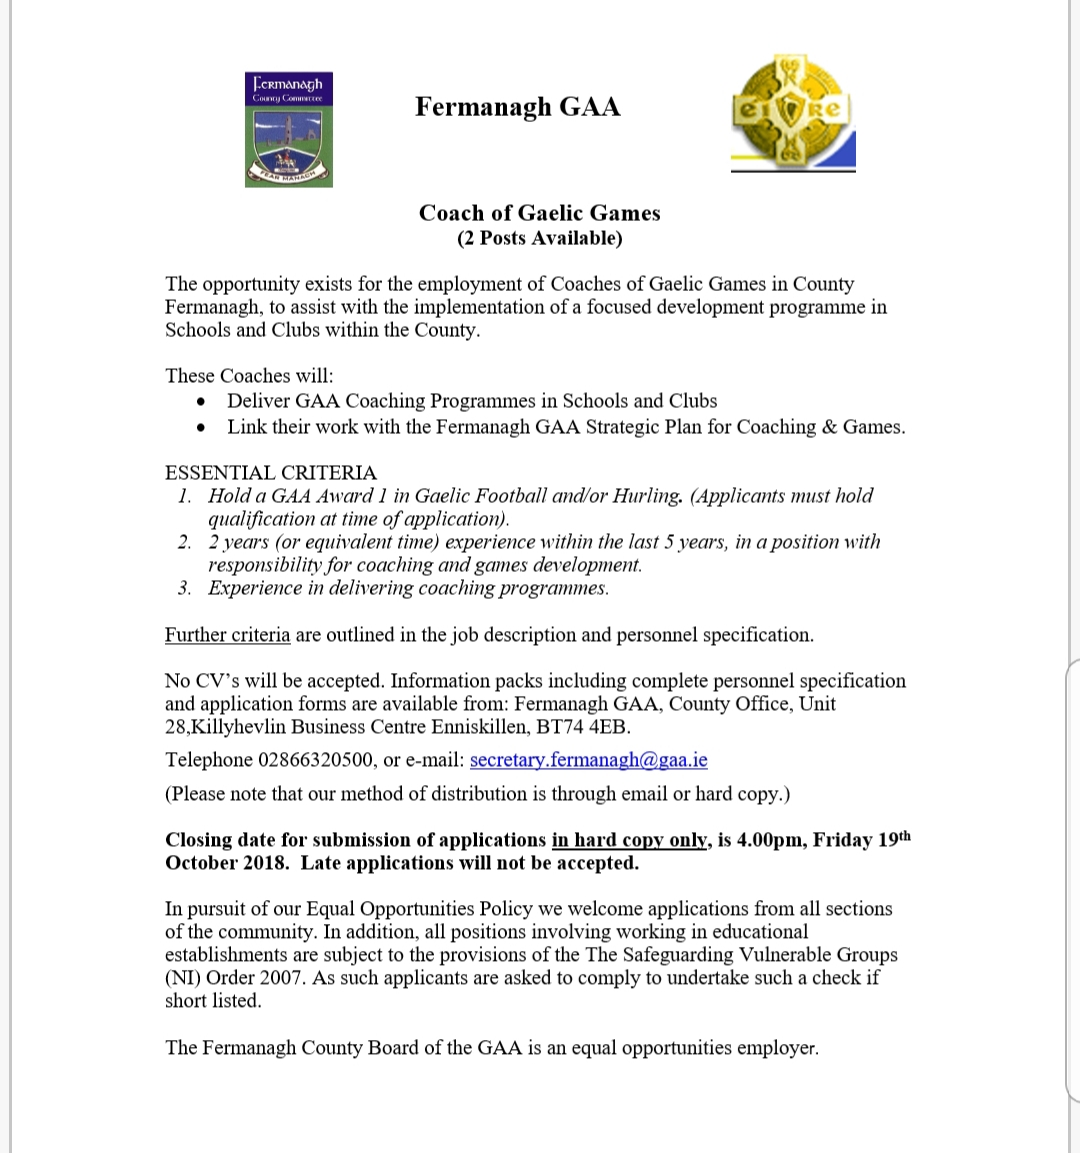 Fermanagh GAA are recruiting for 2 posts